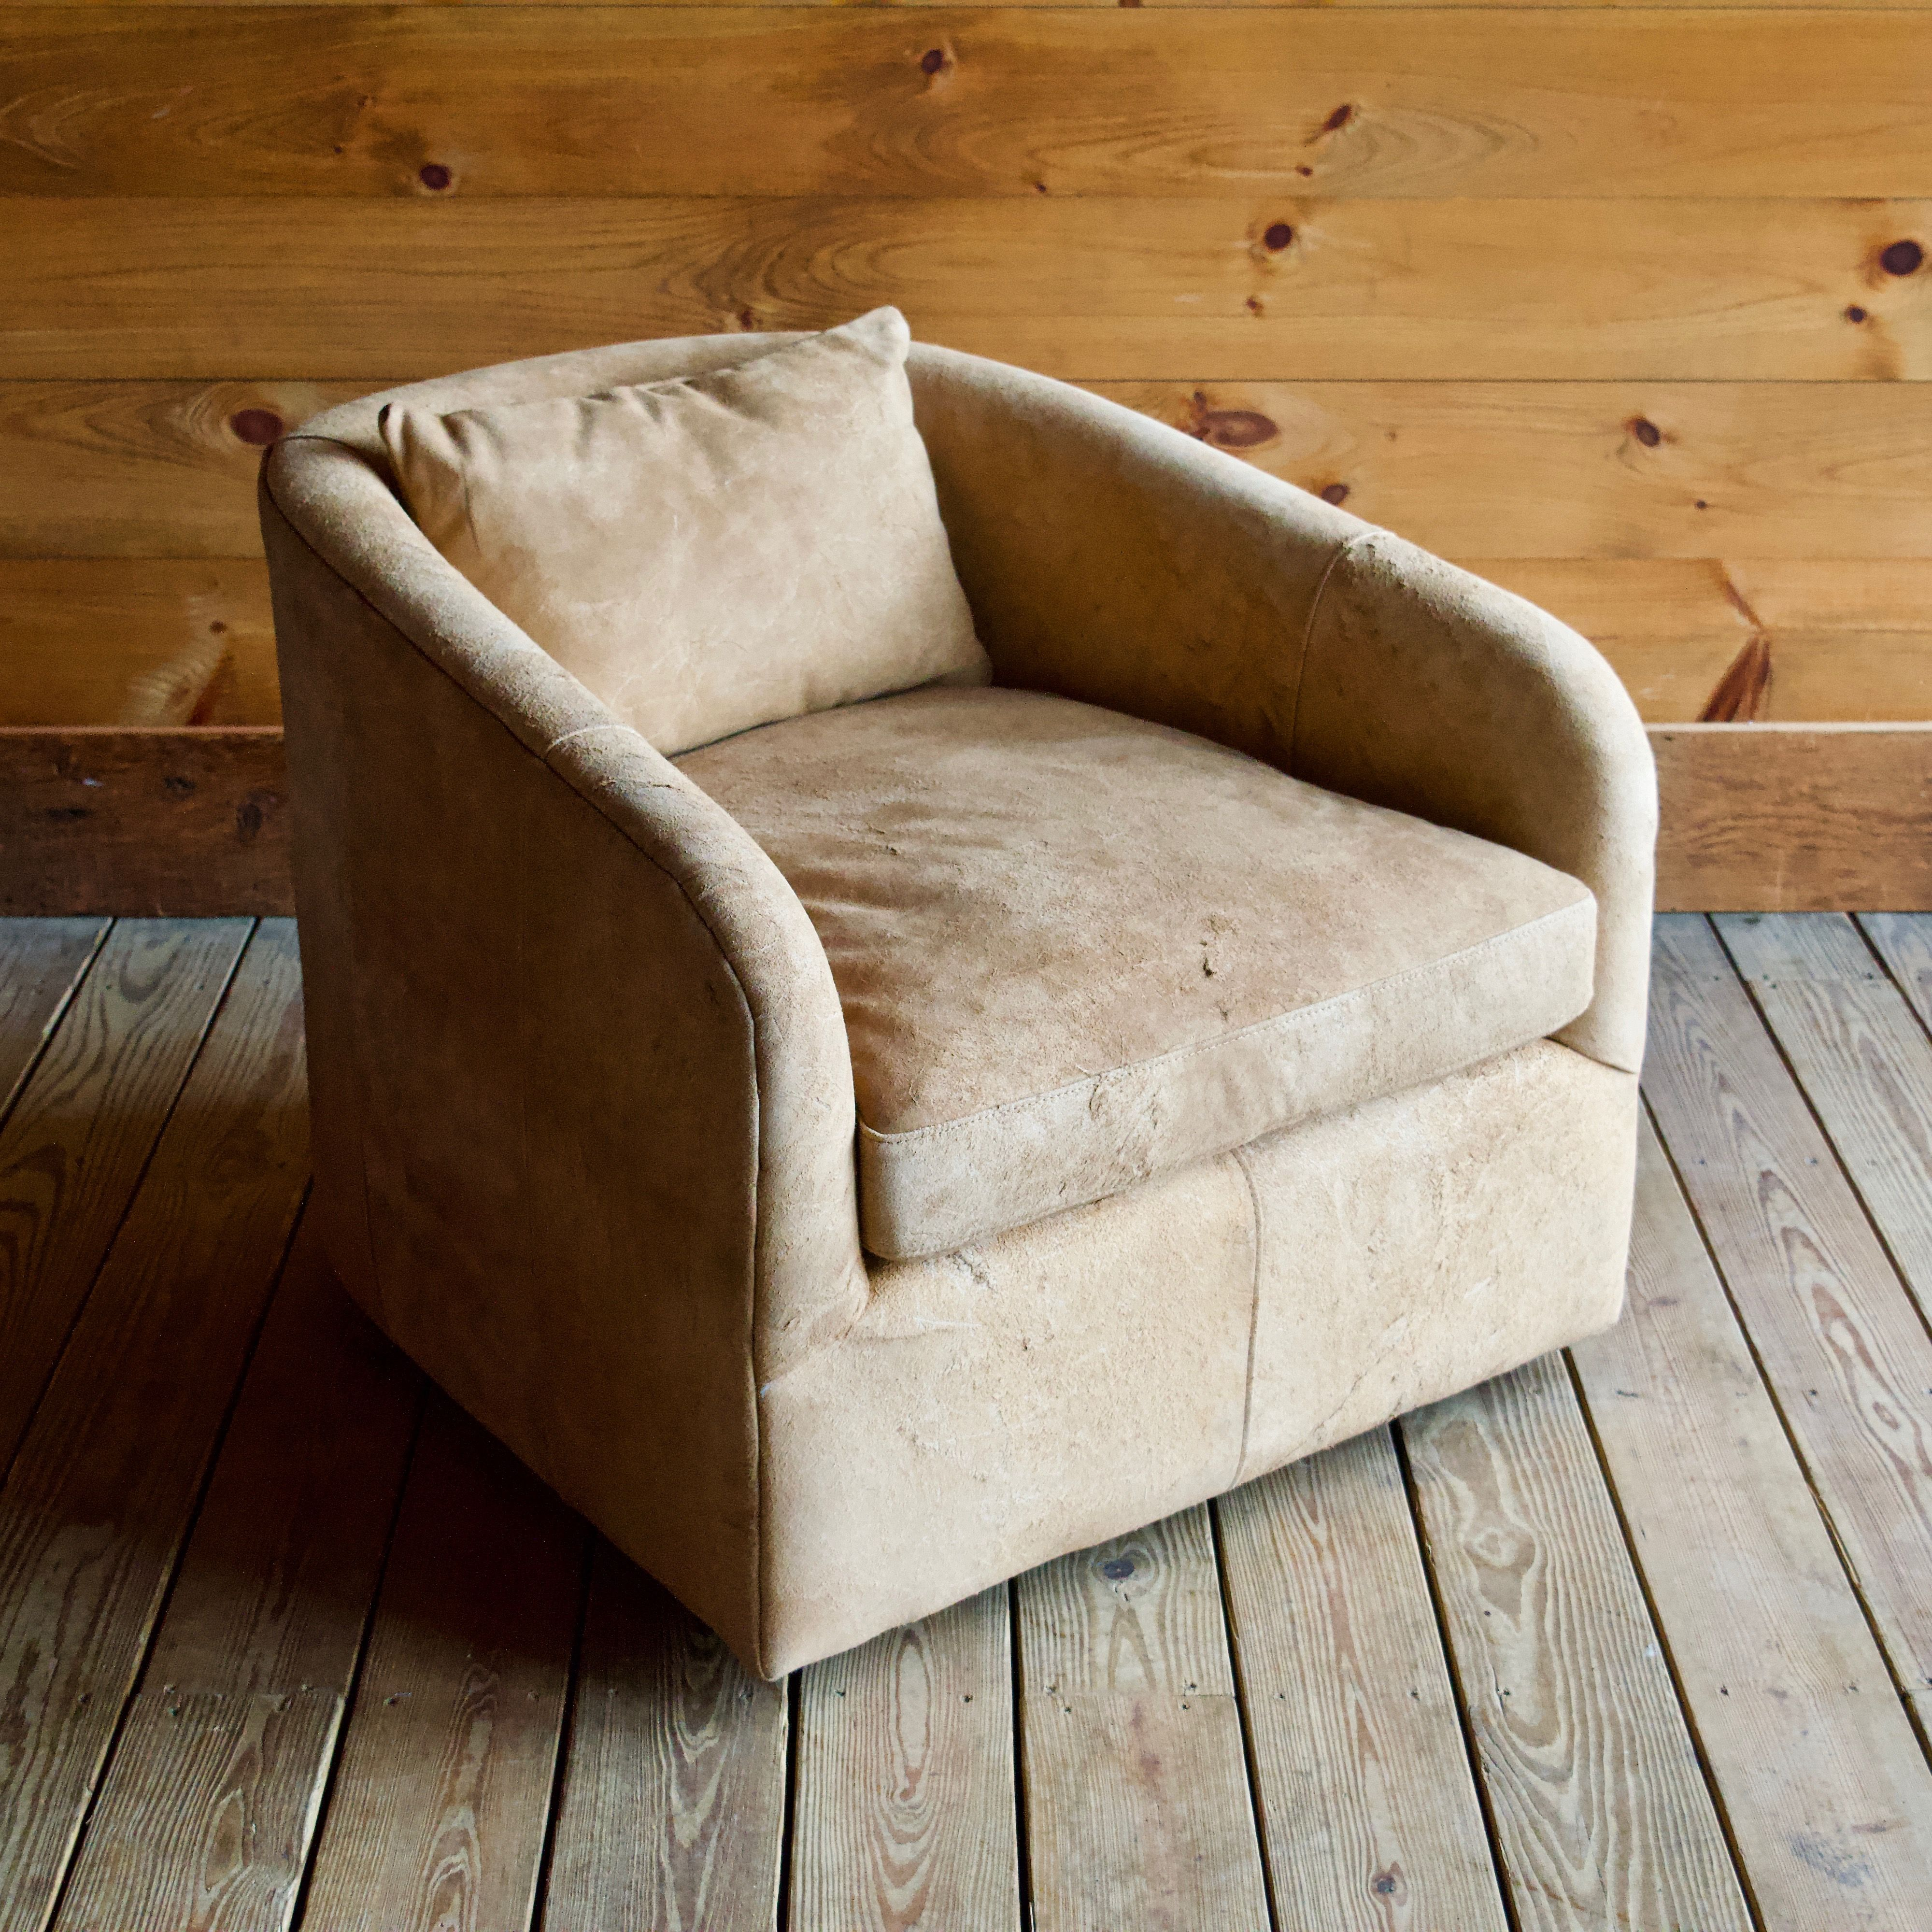 Fulton Suede Swivel Chair Rustic Leather Chairs Chair Rustic Chair